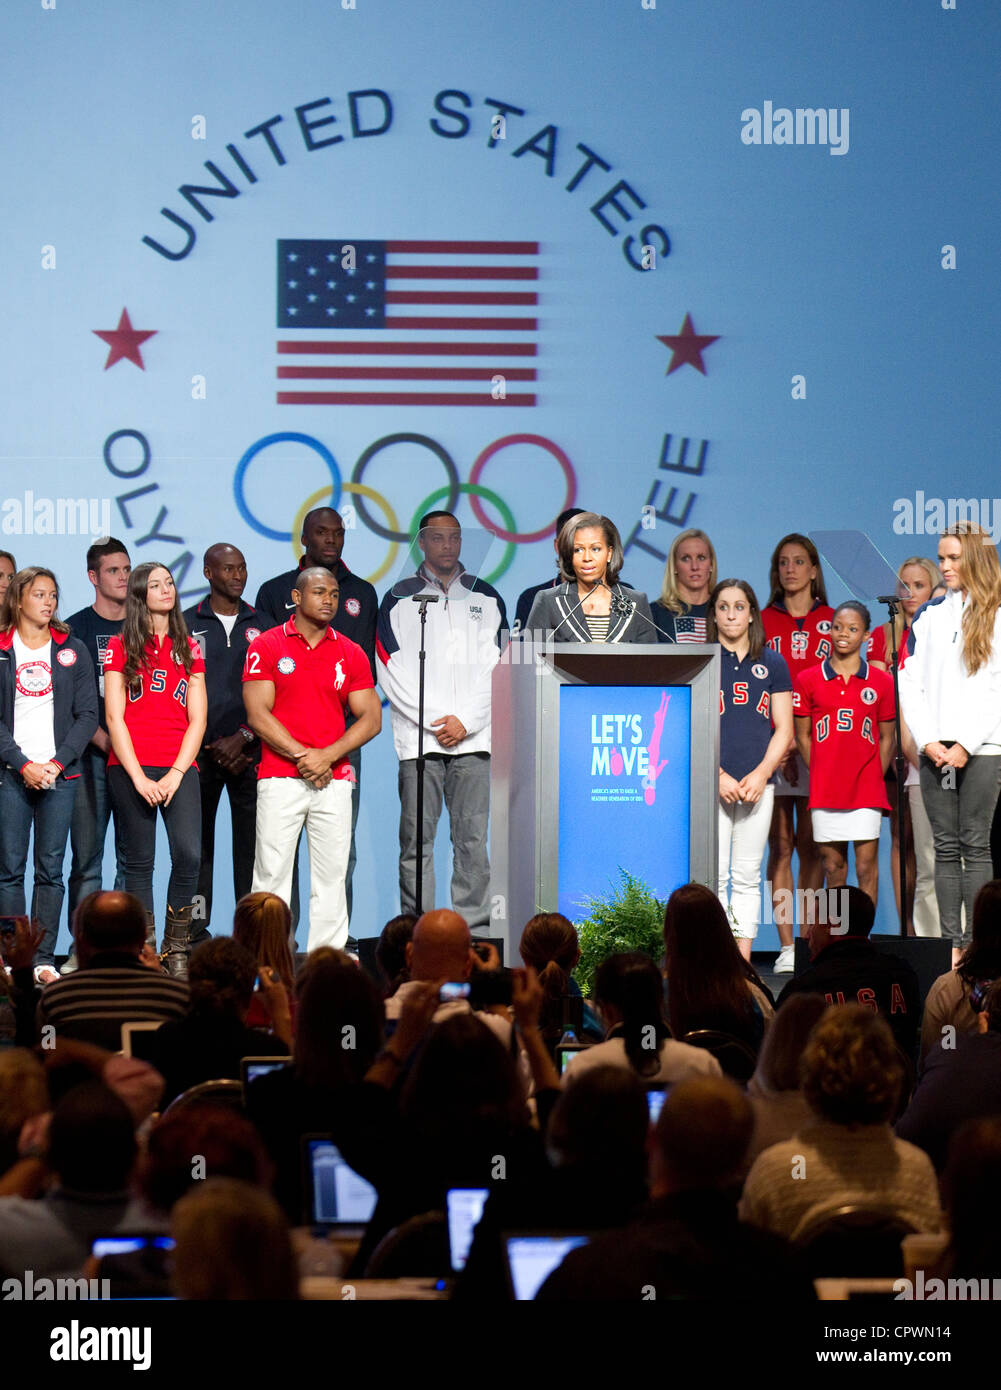 First Lady of the United Sates of America Michelle Obama speaks to media with USA Olympic athletes on stage - Stock Image